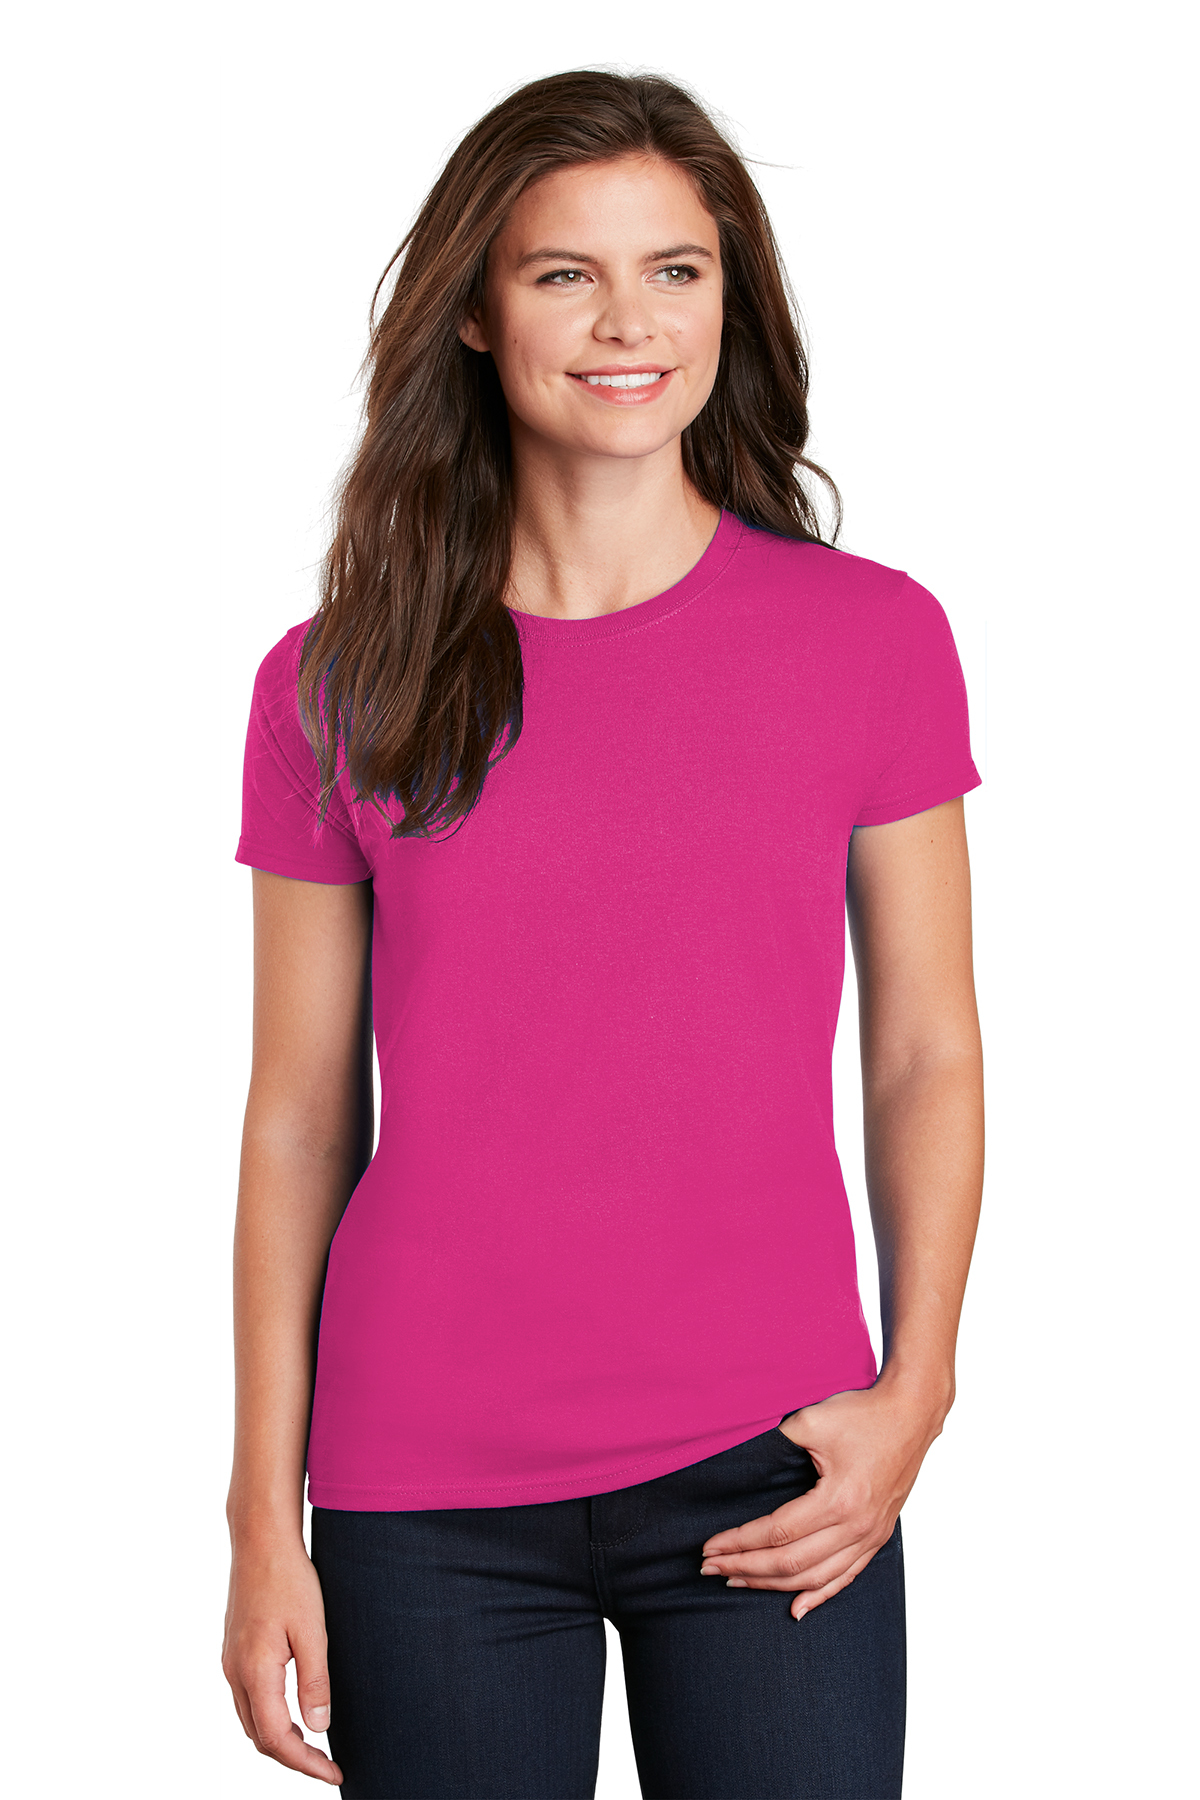 759c444c3125ec Gildan® - Ladies Ultra Cotton® 100% Cotton T-Shirt | 6-6.1 100 ...